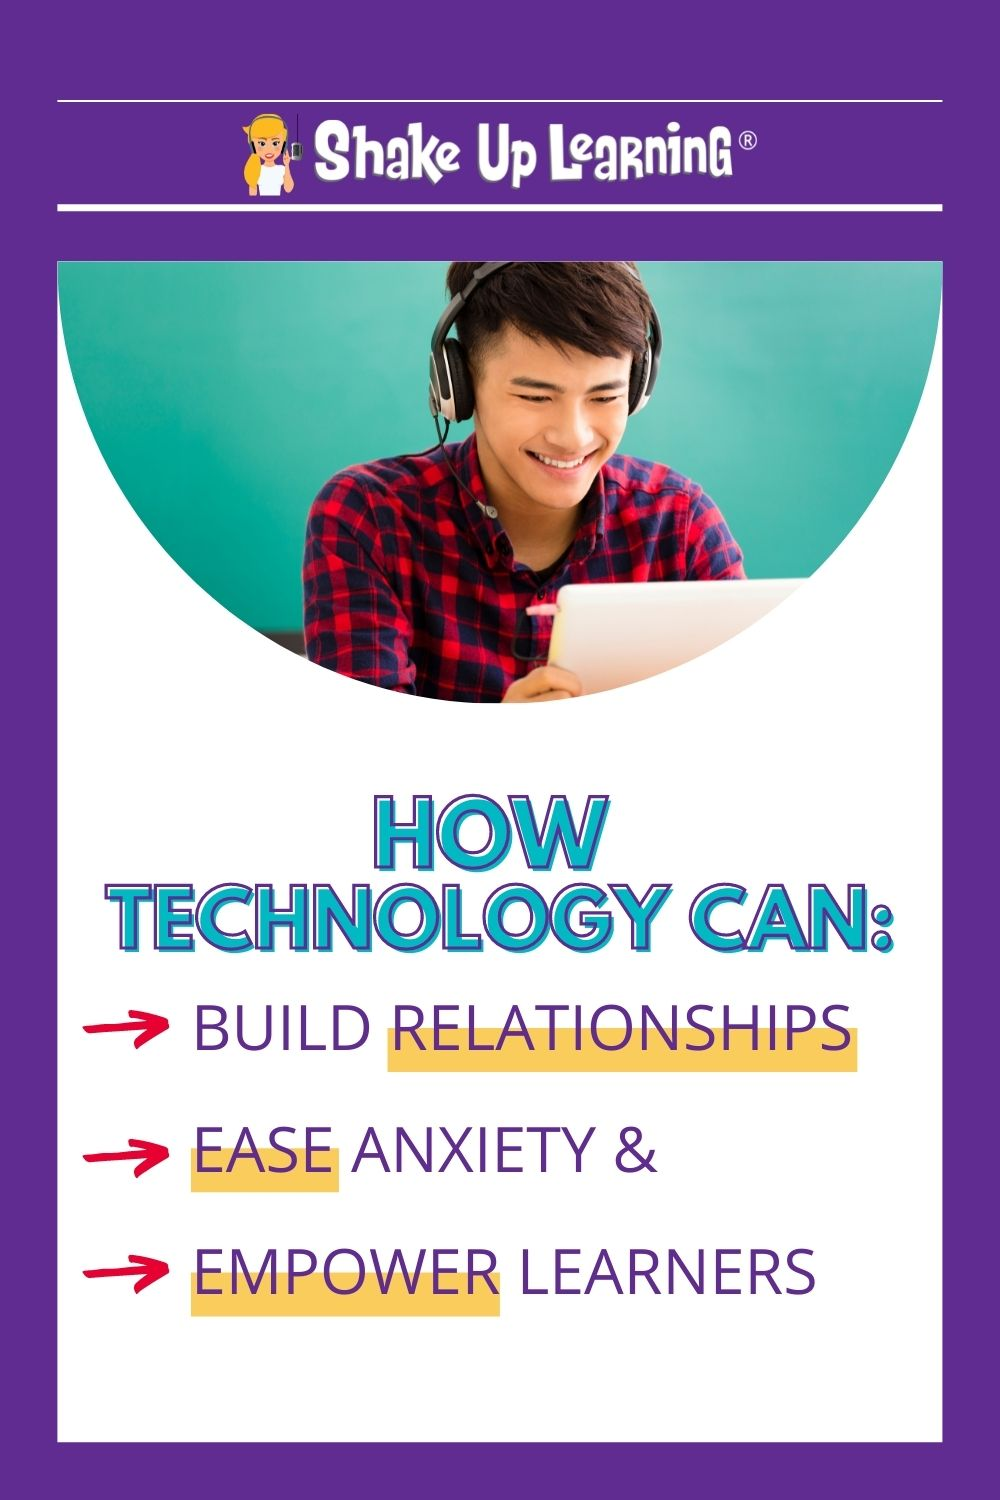 How Technology Can Help Build Relationships, Ease Anxiety, and Empower Learners! – SULS0126